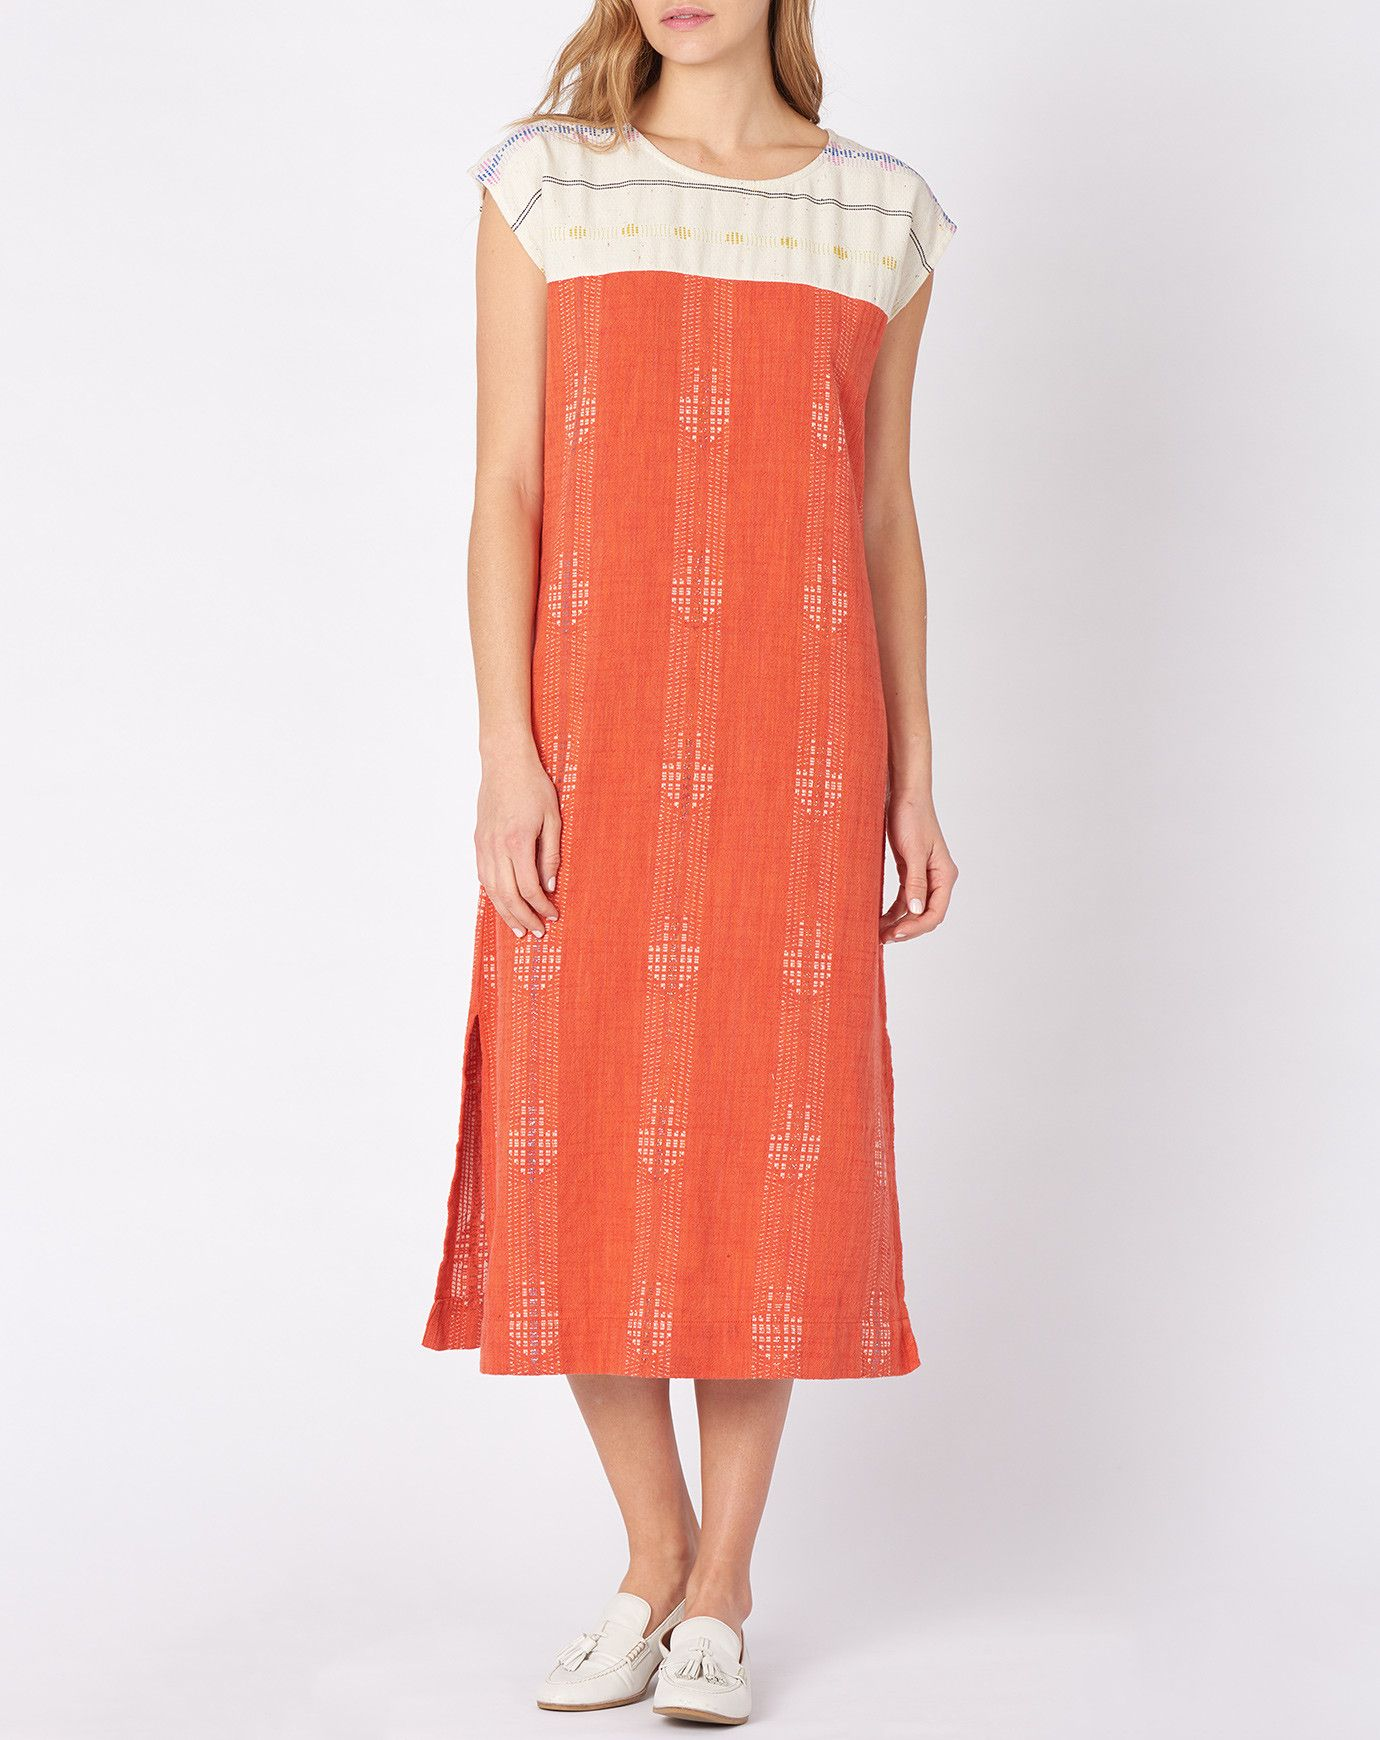 Ace jig tulum dress in flare dresses ace and jig